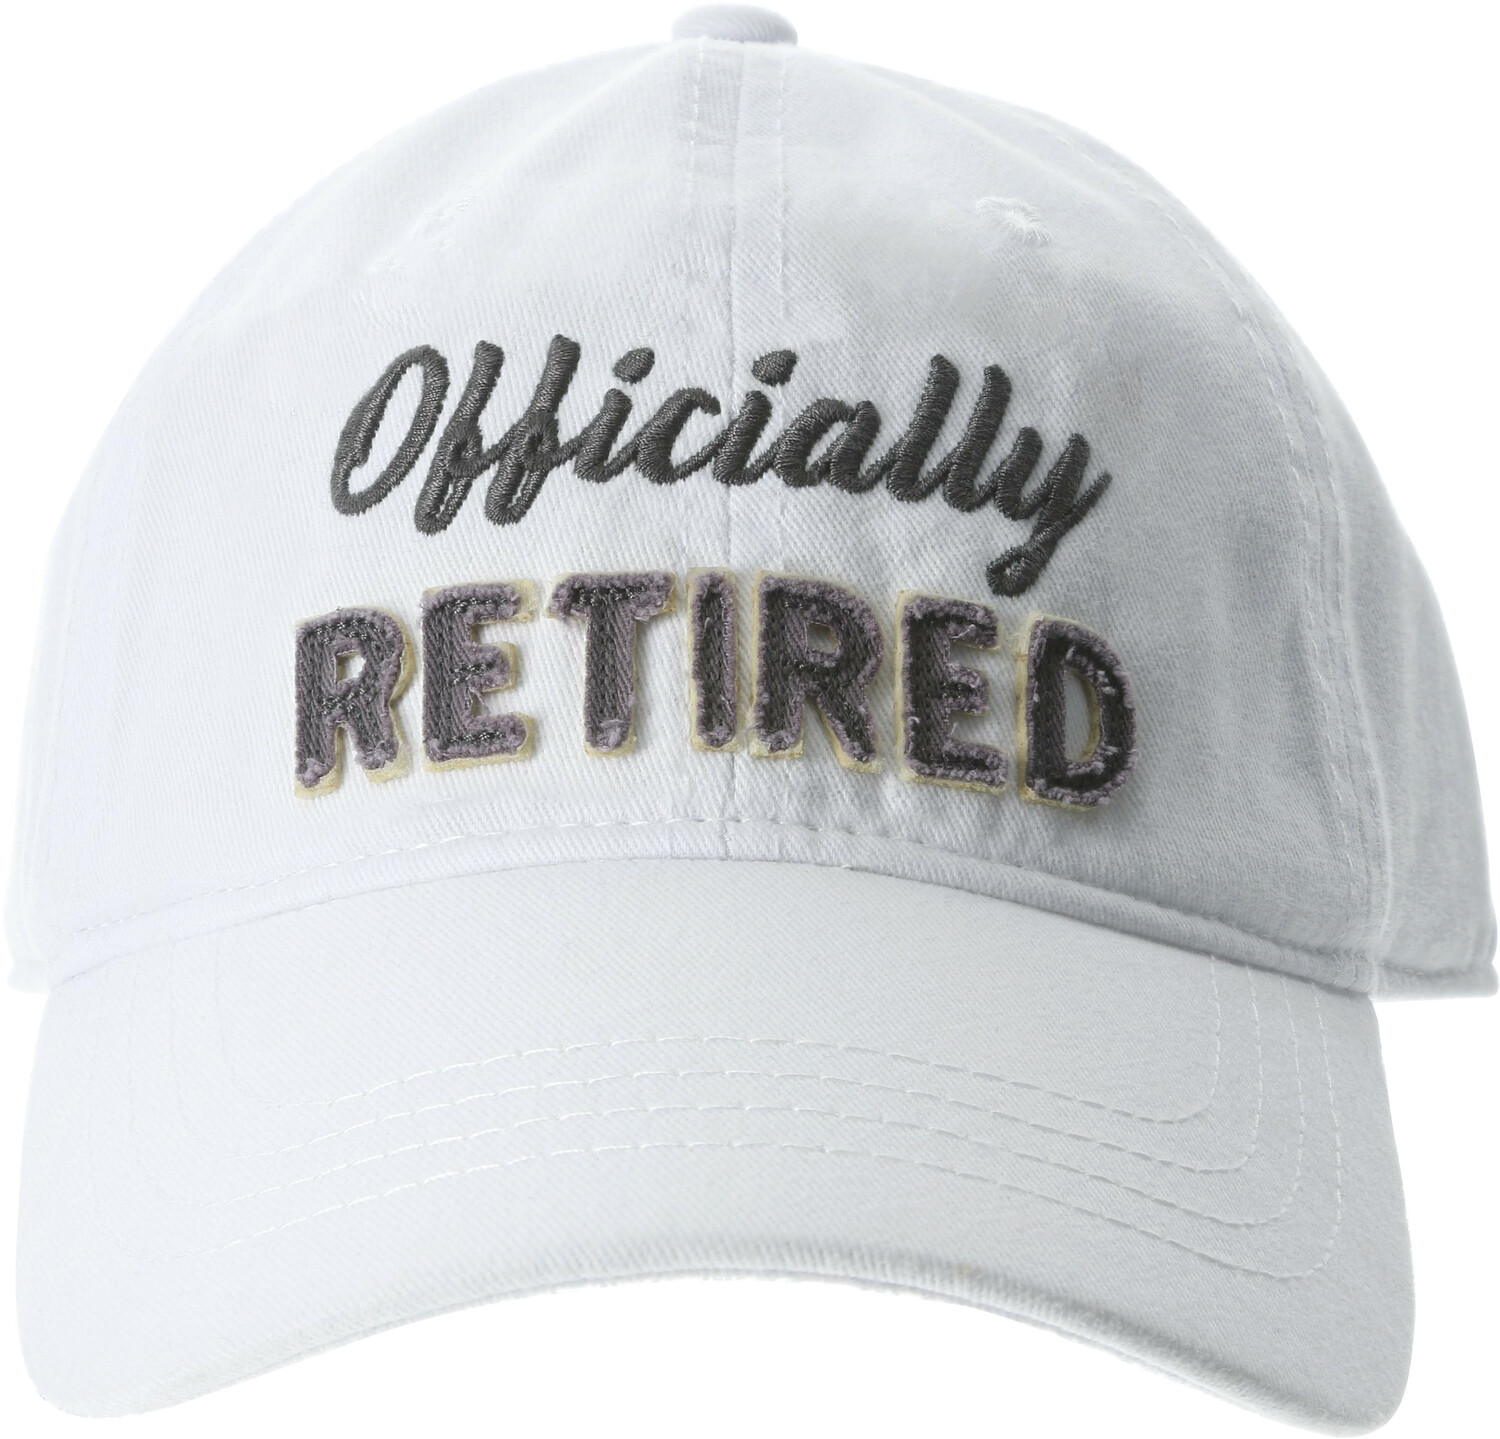 Officially by Retired Life - Officially - White Adjustable Hat